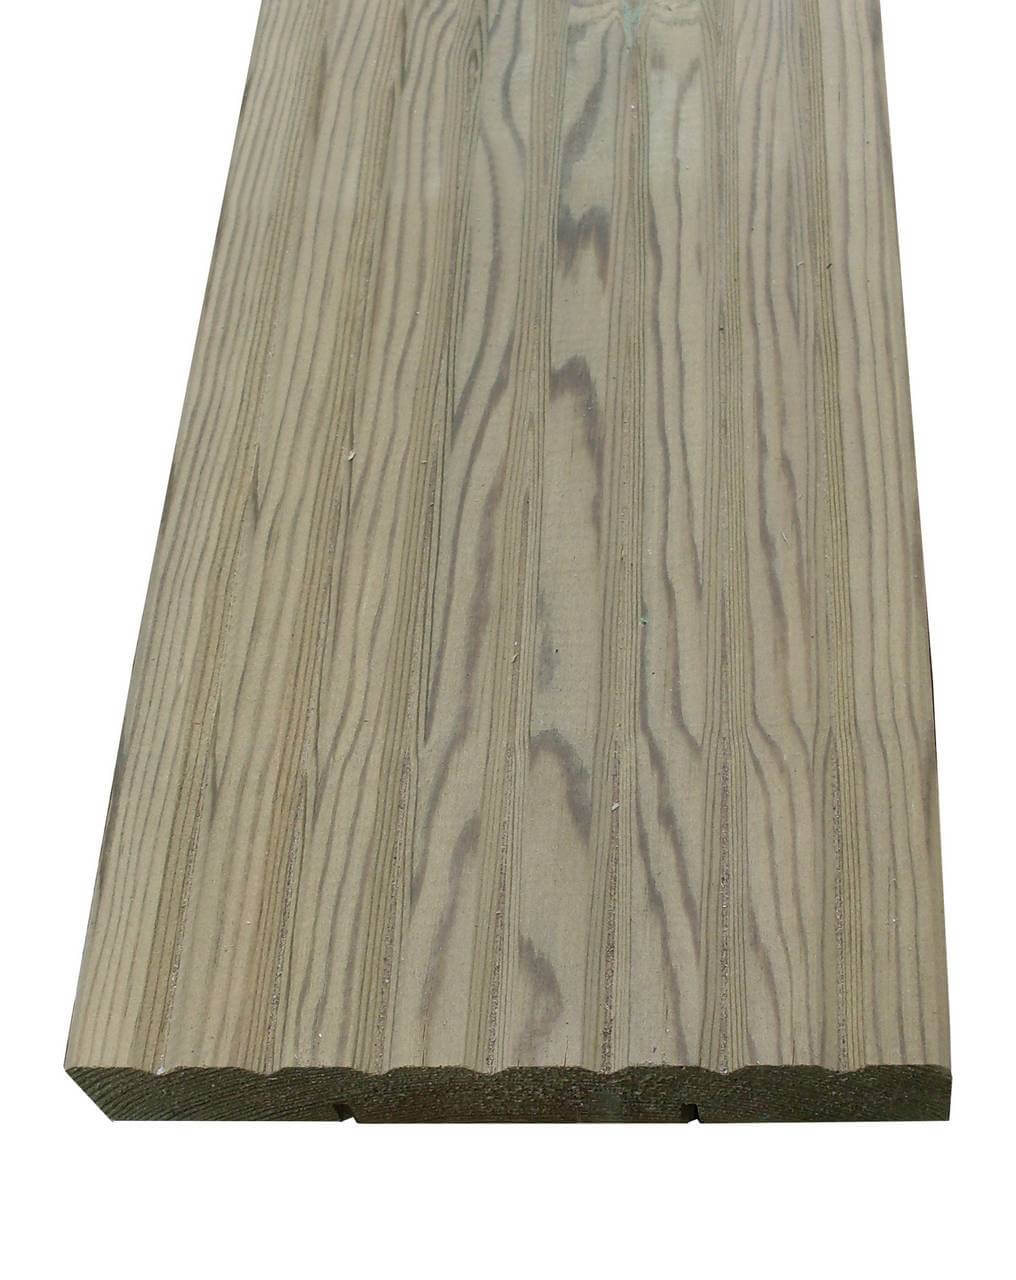 Heavy Duty Decking Board